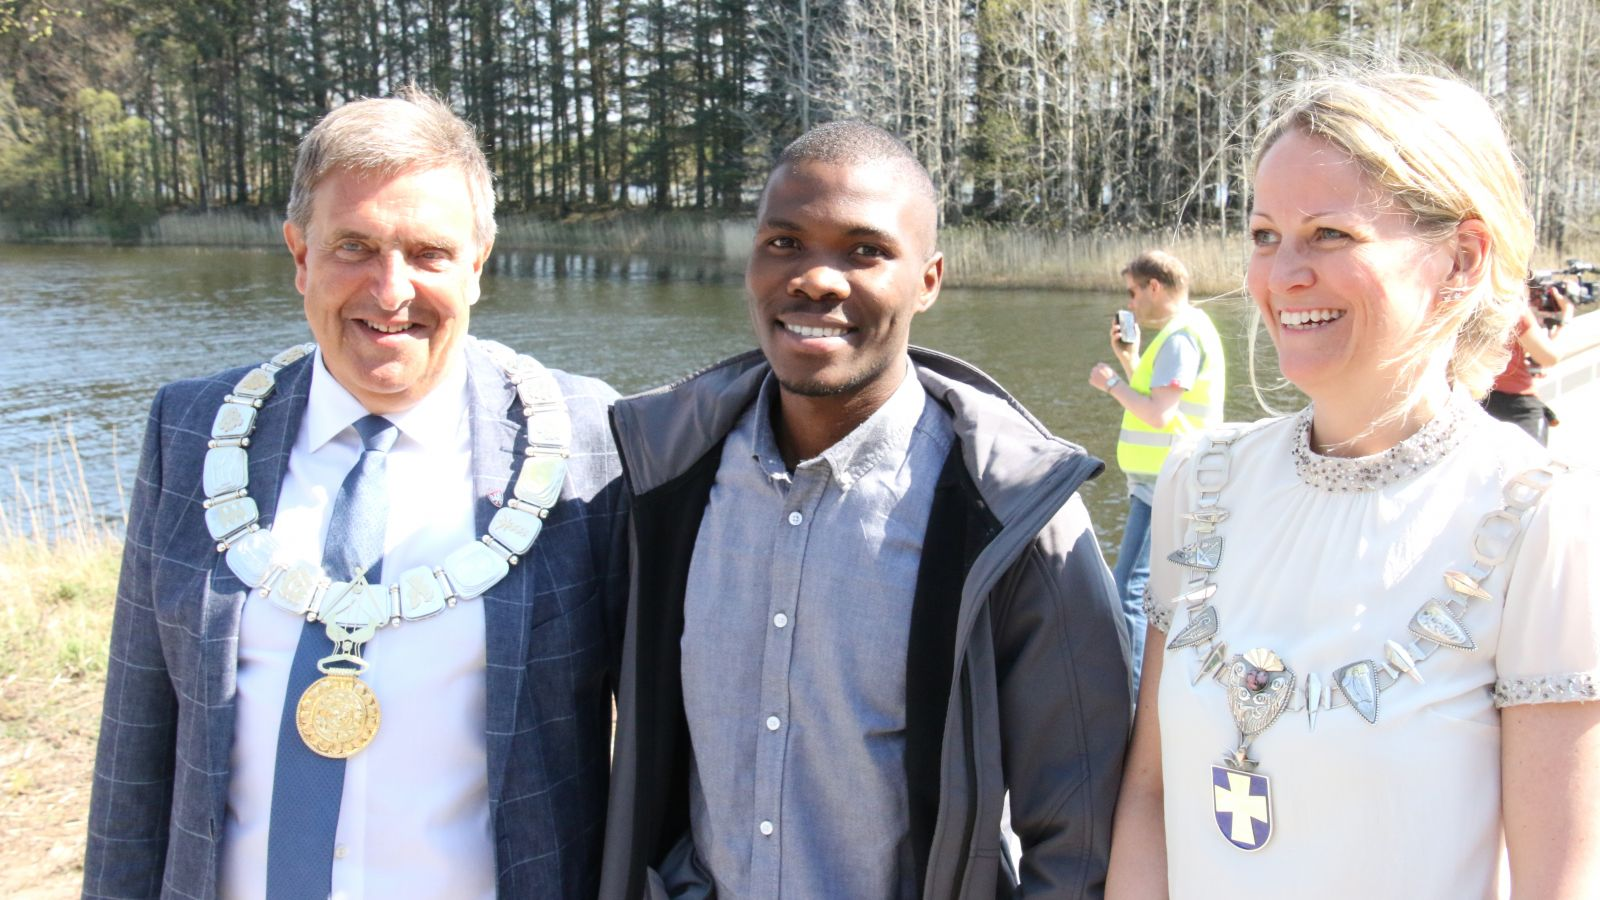 One of the youth delegates on a picture with the two mayors of Time and Klepp municipalities before the official opening of the new footbridge